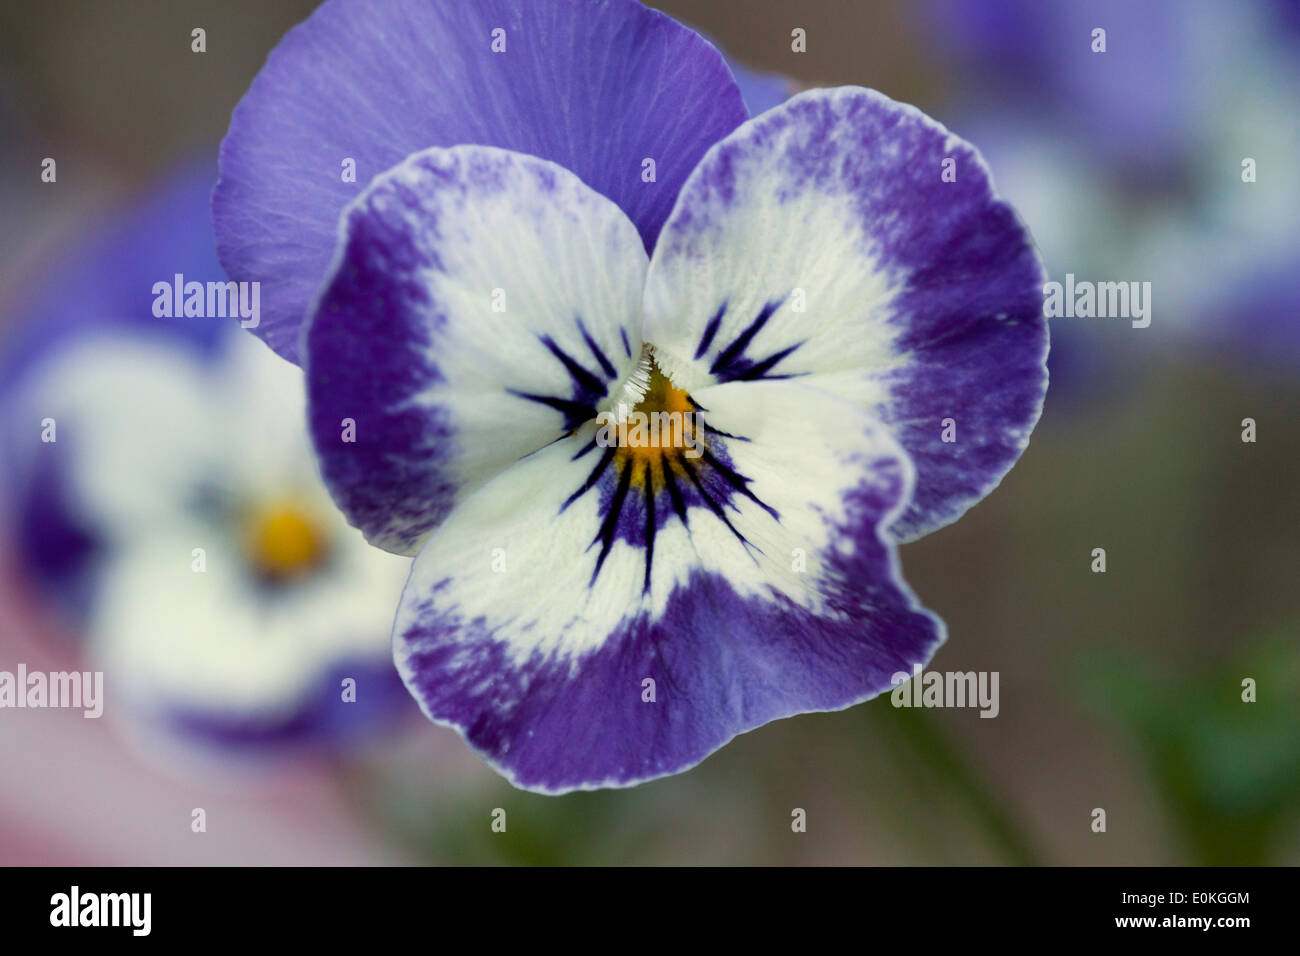 Deep Blue and White pansy flower closeup - Stock Image